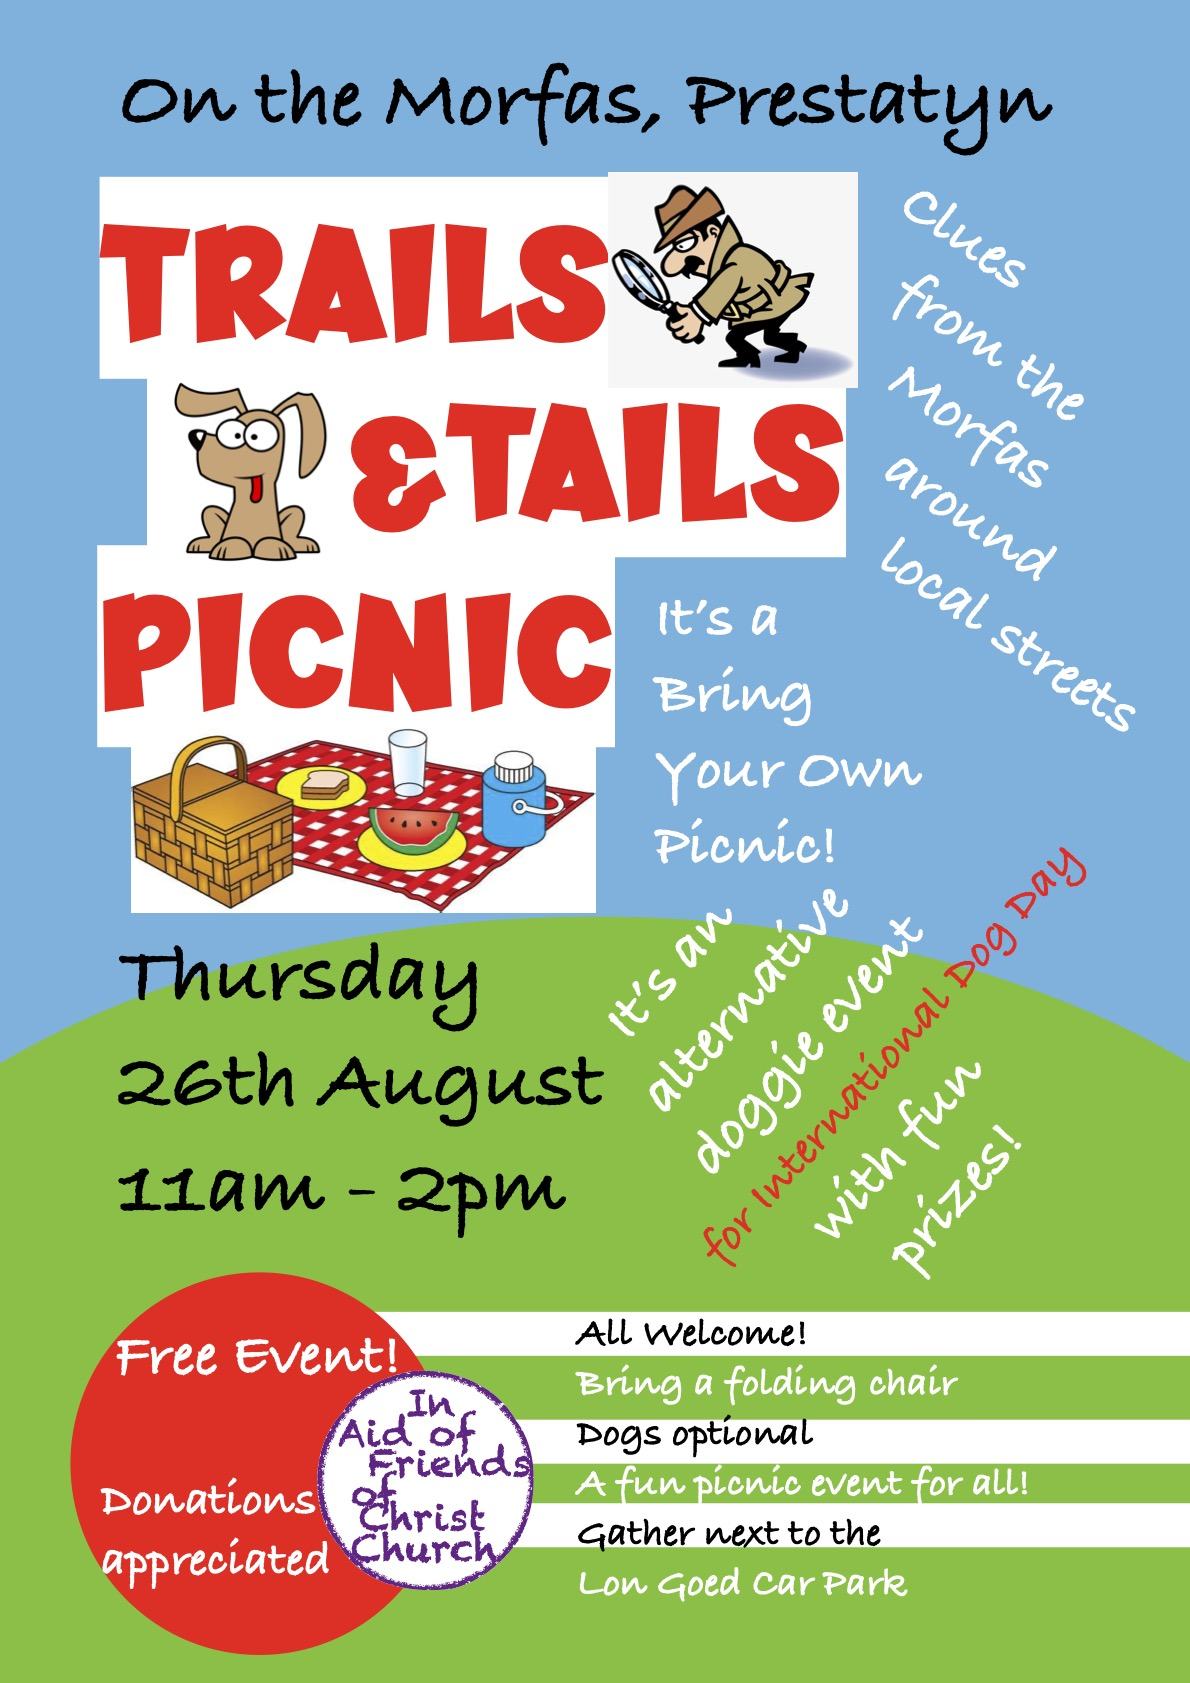 A Special Event from Friends of Christ Church. A Trails & Tails BYO Picnic at Coed Y Morfa, Prestatyn on Thursday 26th August from 11am - 2pm. It's International Dog Day, so bring along any 4 legged friends (optional) for prizes! There's a local Street Treasure Trail for those with eagle eyes! BYO folding chair & picnic. Subject to reasonable weather! Meet next to the Car Park in Lon Goed! Bring family & friends to share in the fun! Free event but donations encouraged! All are welcome!